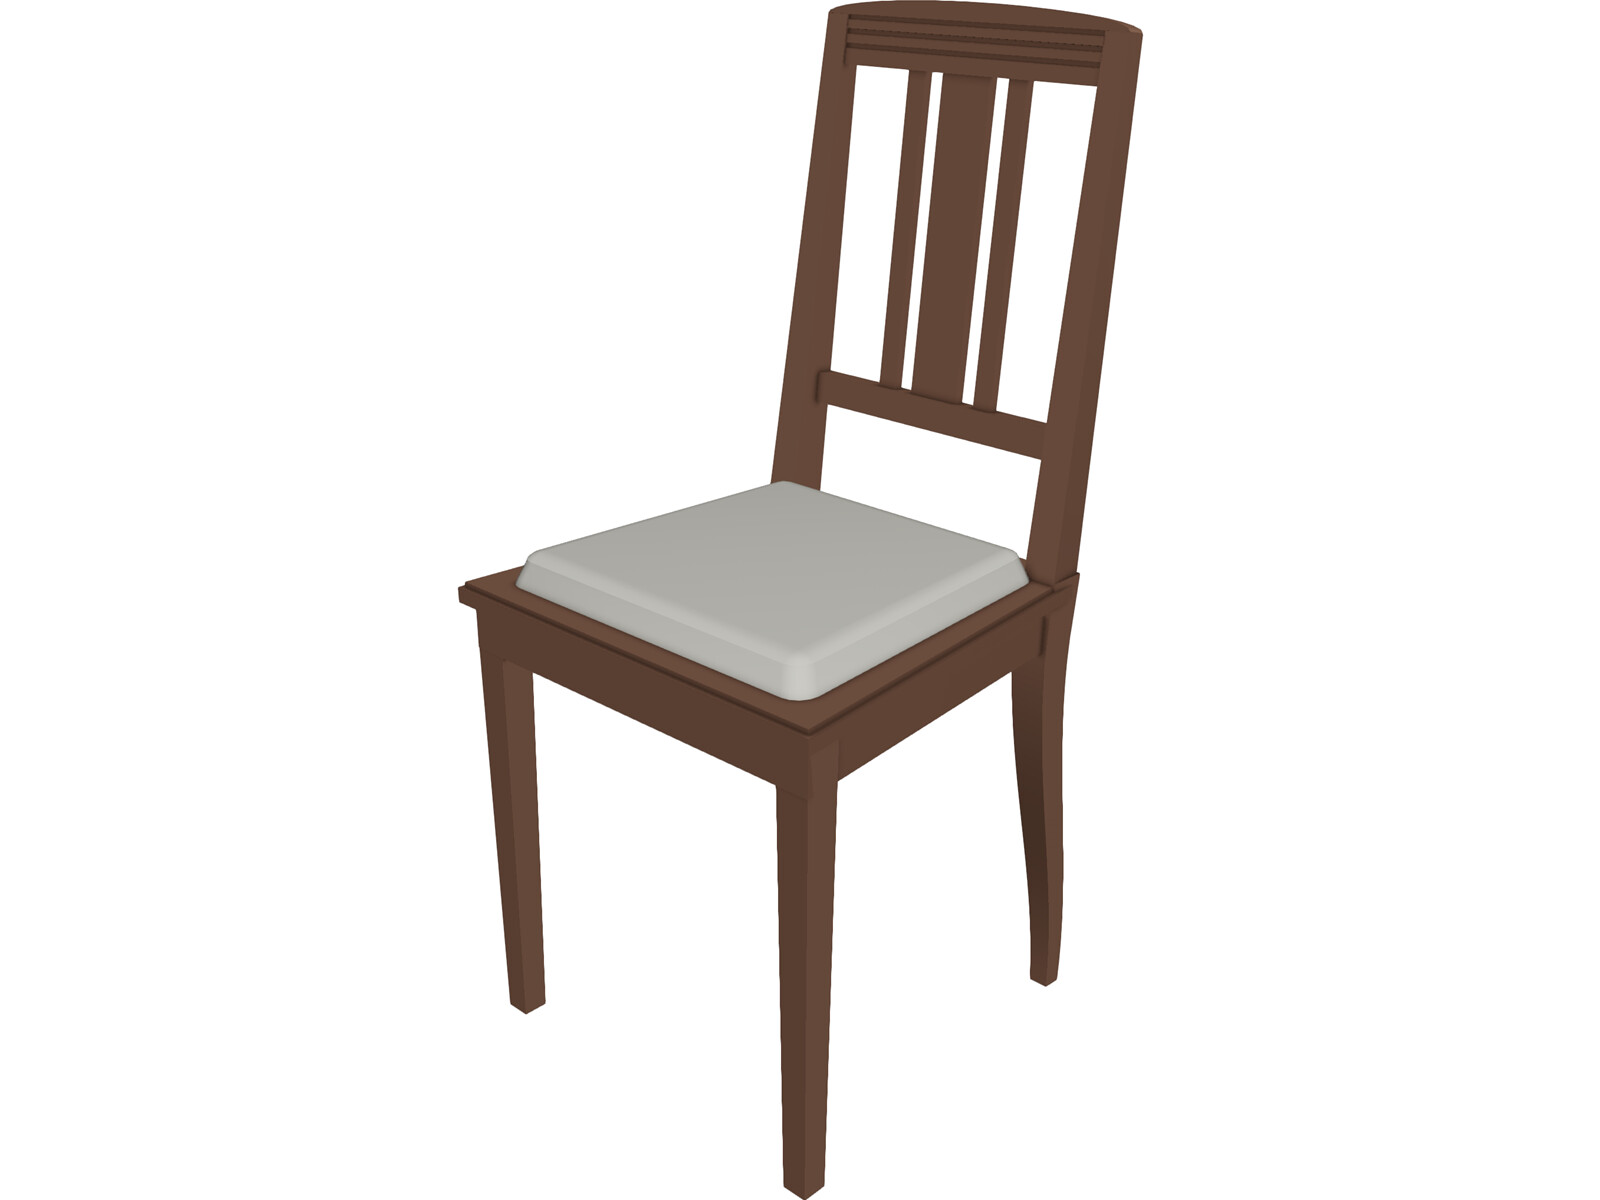 Chair wood 3d model 3d cad browser for Chair 3d model maya